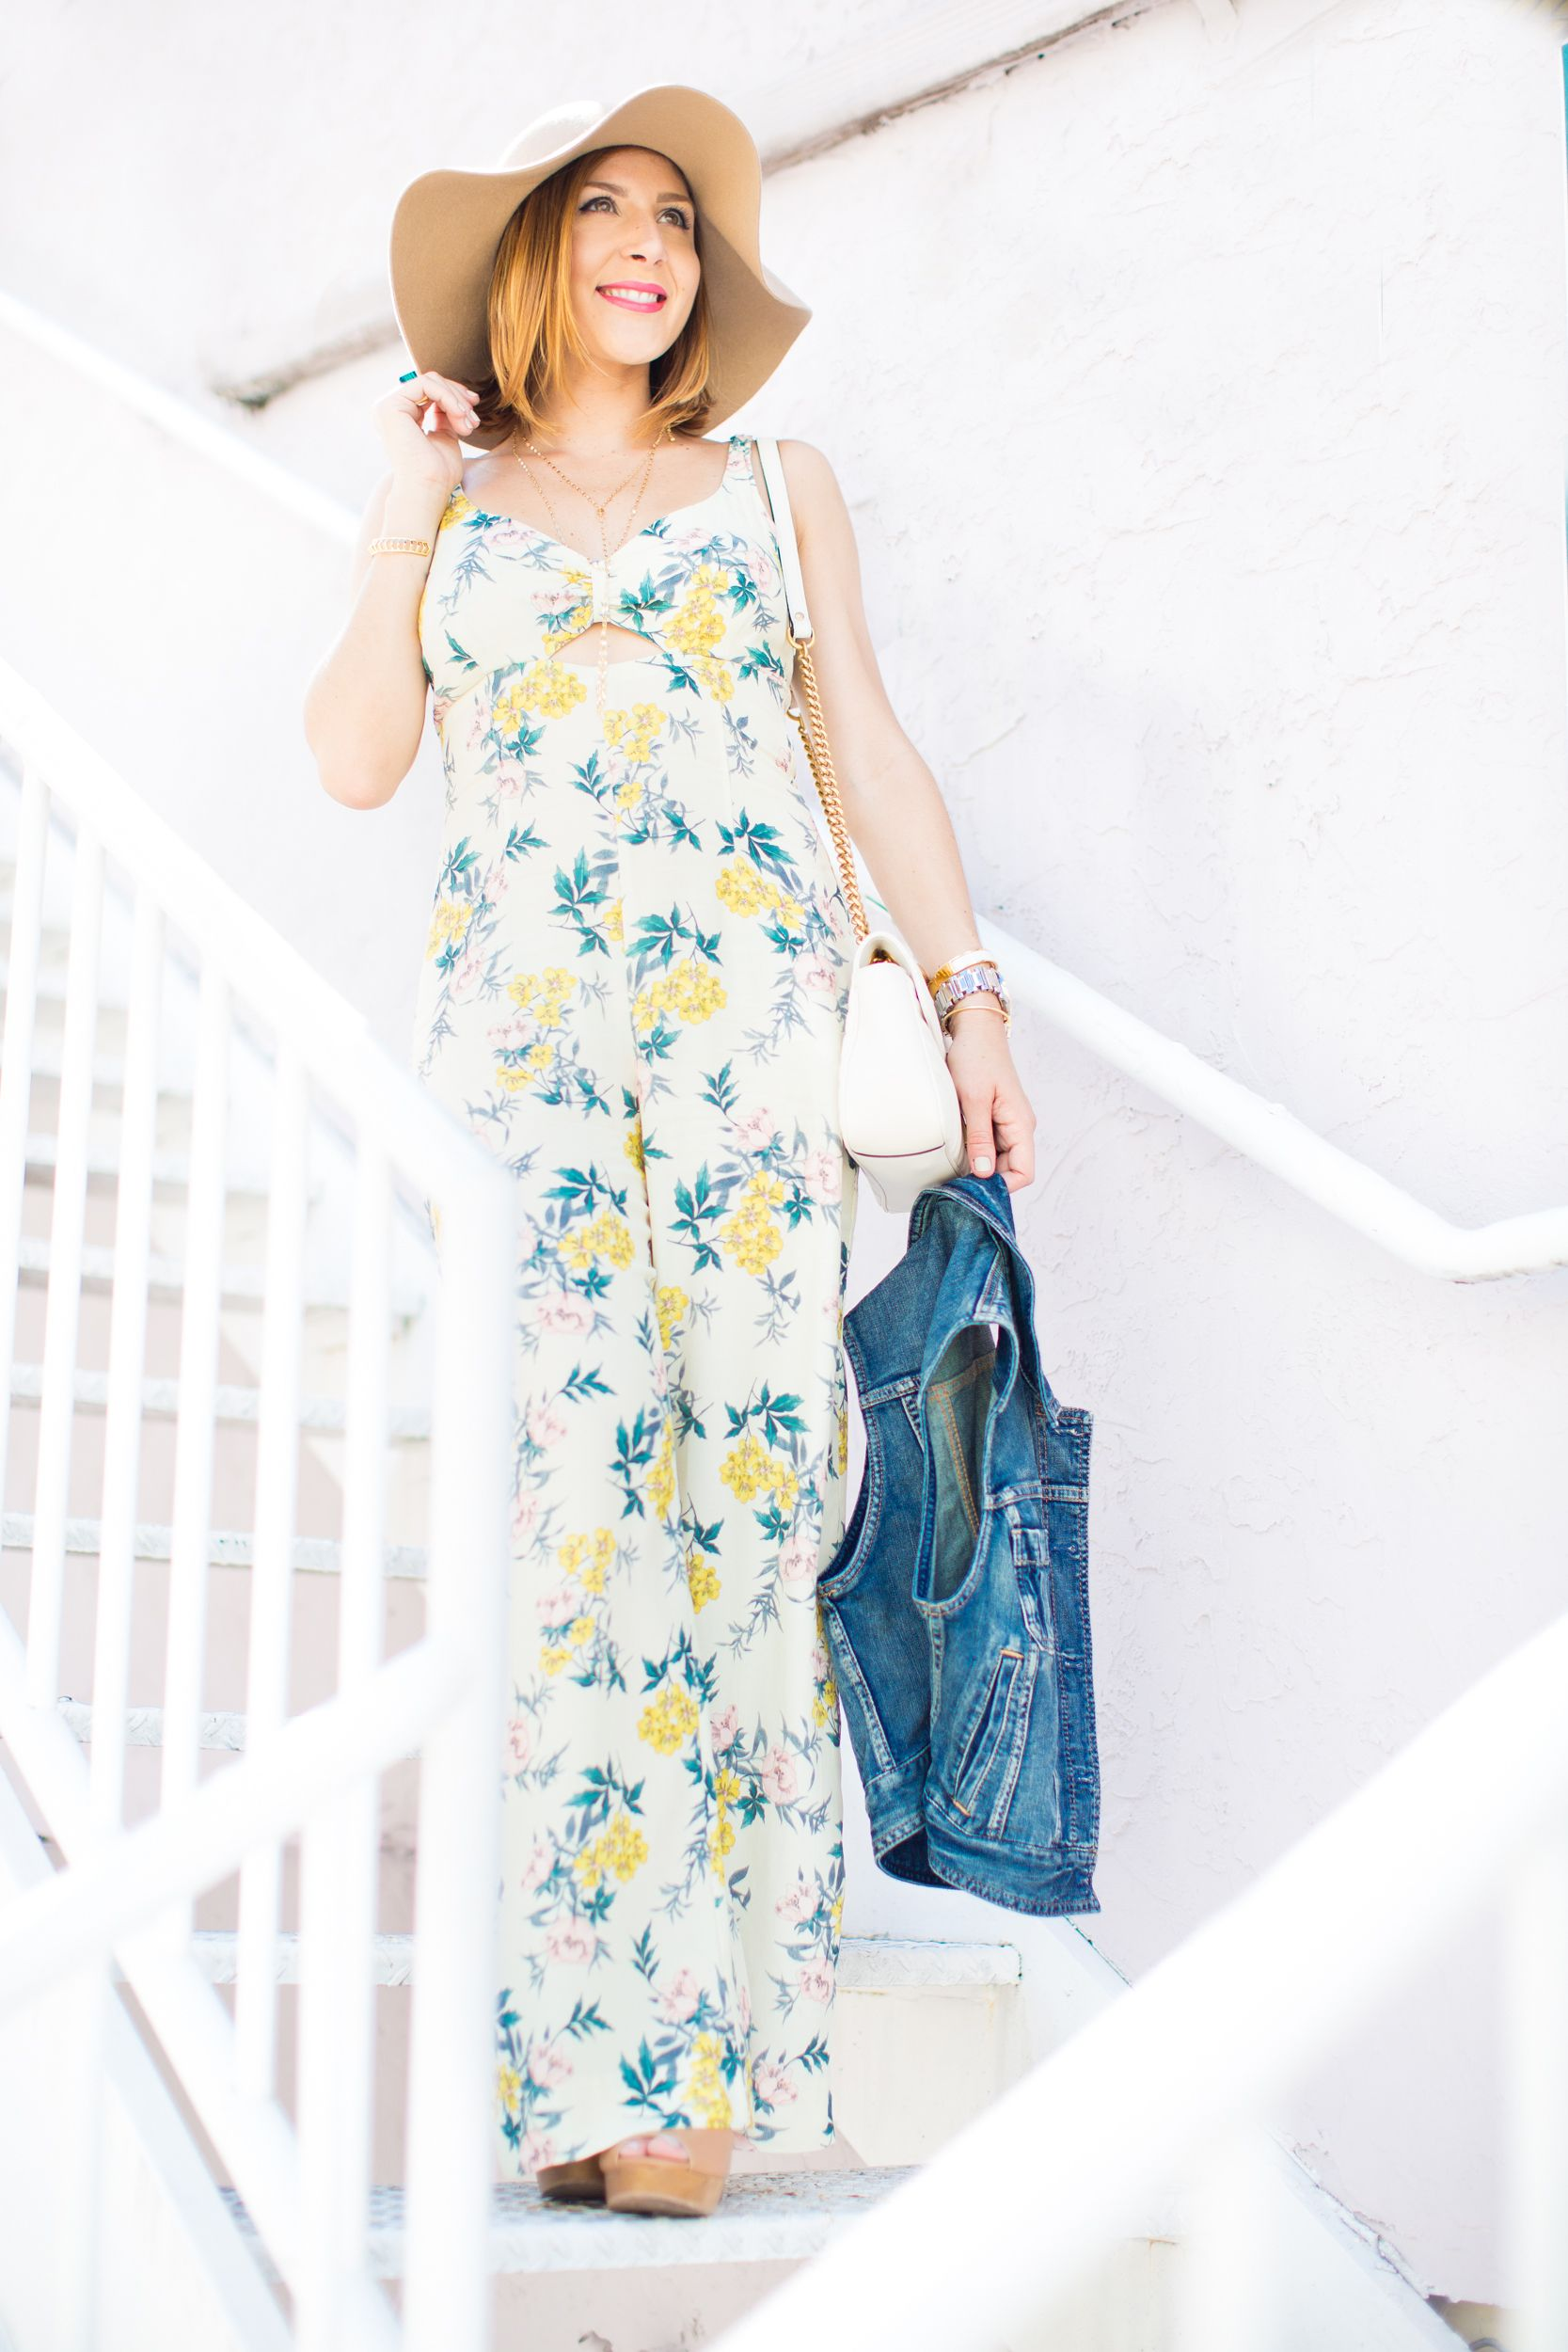 8403b31cbda Blame it on Mei Miami Fashion Blogger 2016 Floral Jumpsuit Sleeveless Denim  Vest Floppy Hat Festival Inspo Summer Look Casual Look Summer Outft Casual  Look ...